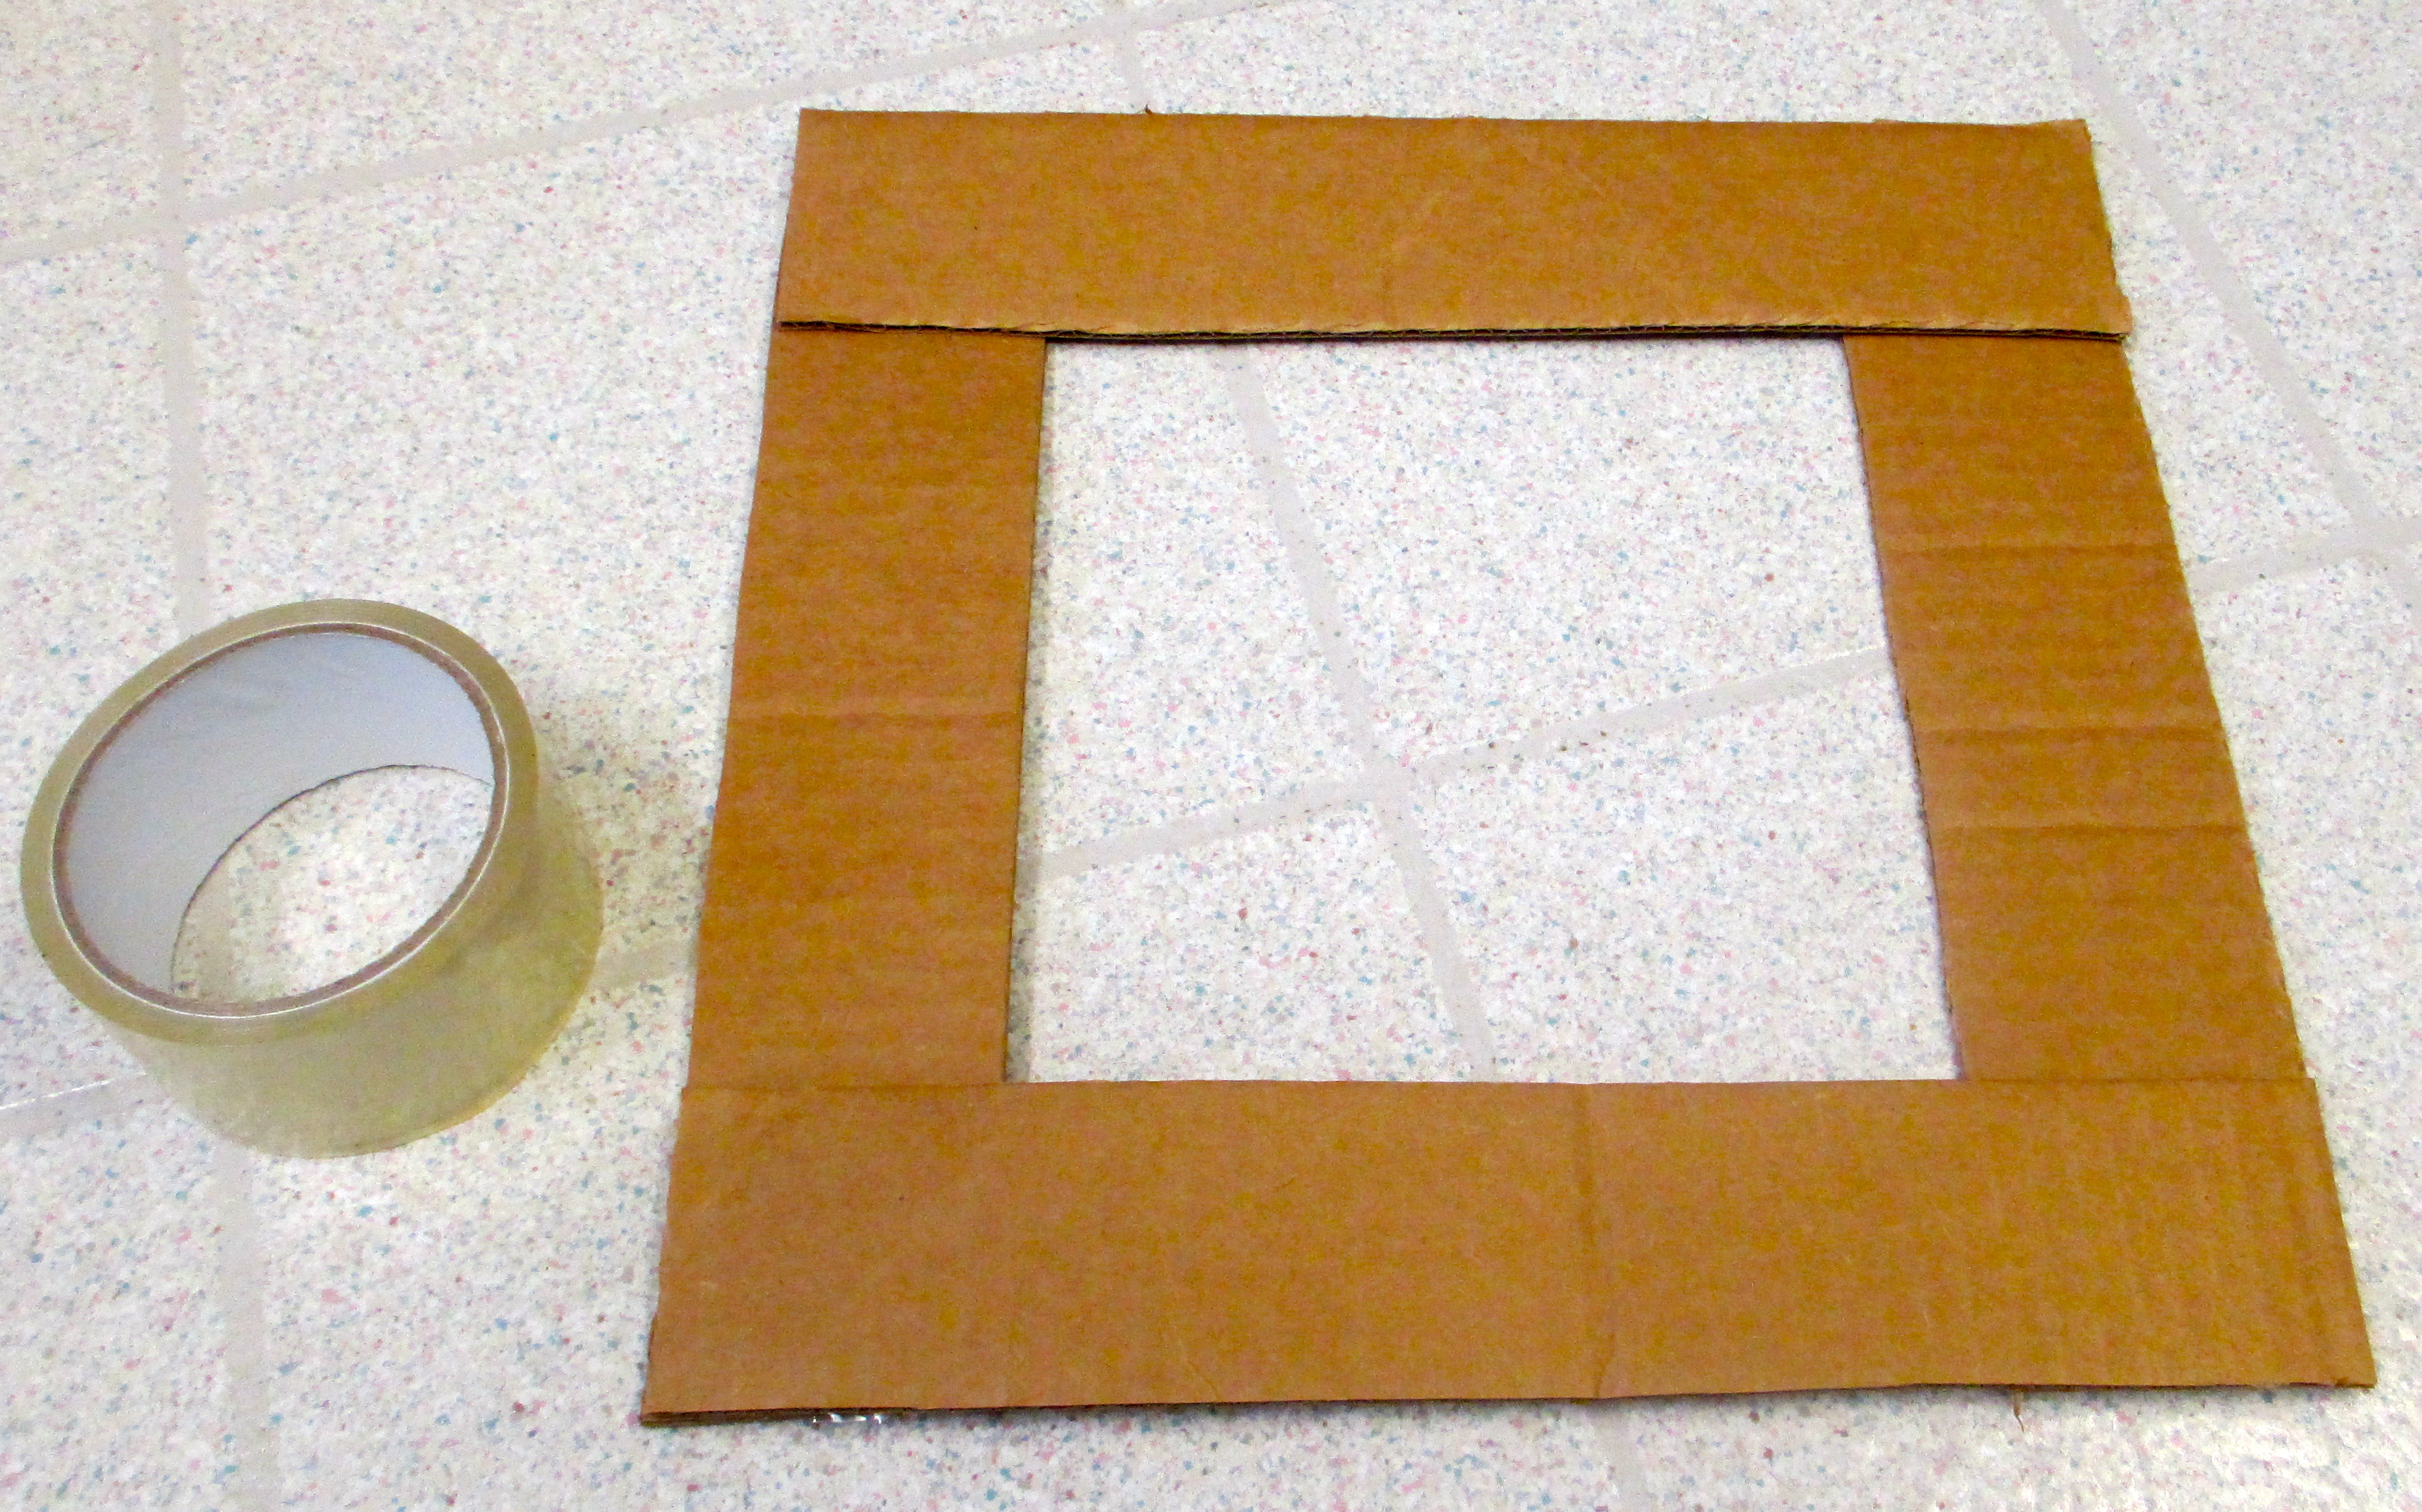 Picture of Use Double-sided Tape to Stick Together Corners of the 4 Strips.